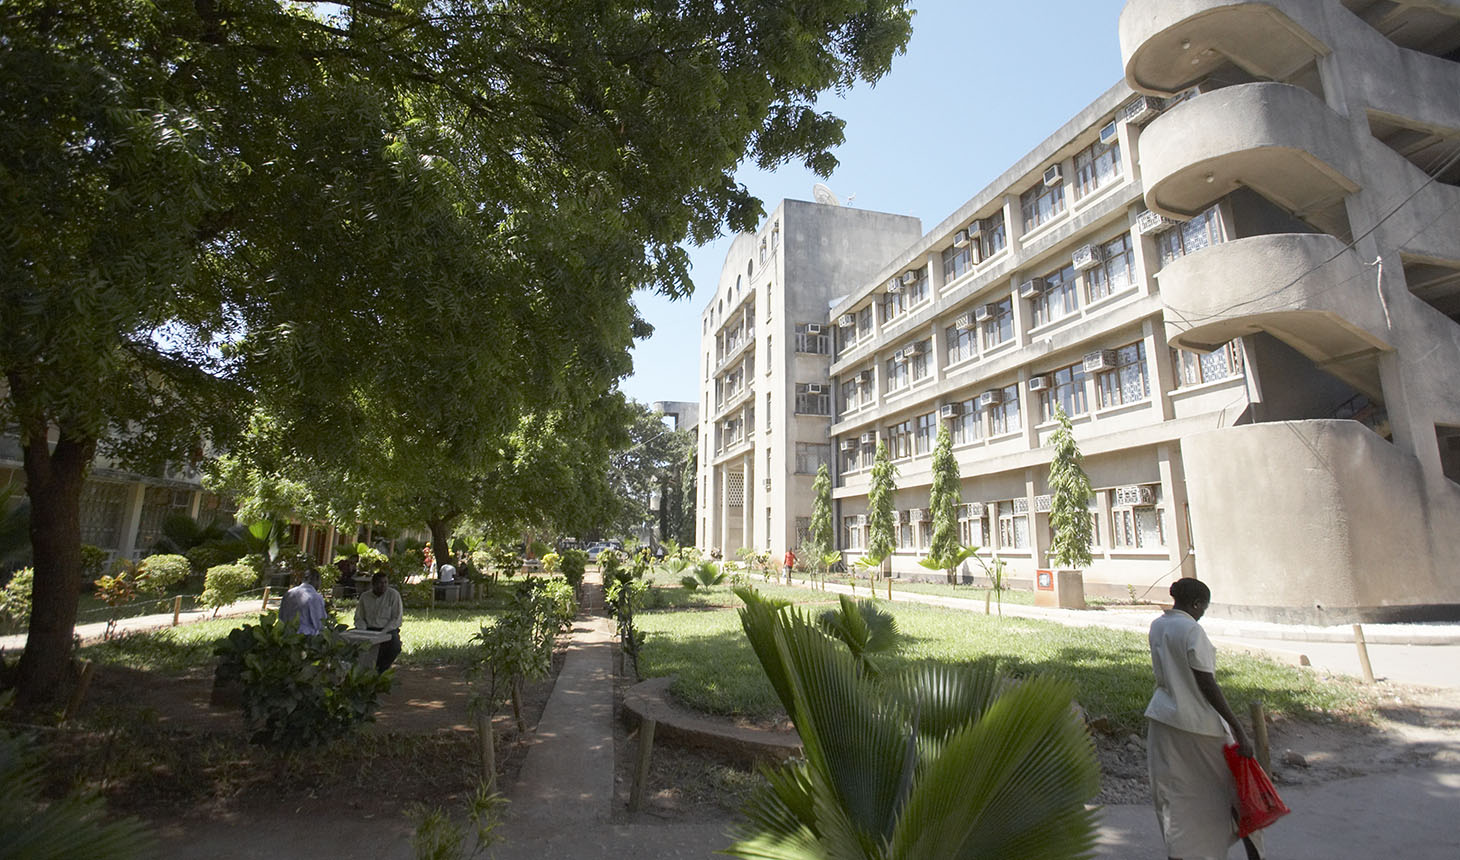 The campus of Muhimbili University of Health and Allied Sciences in Dar es Salaam, Tanzania. Photo by Patrick Saine.